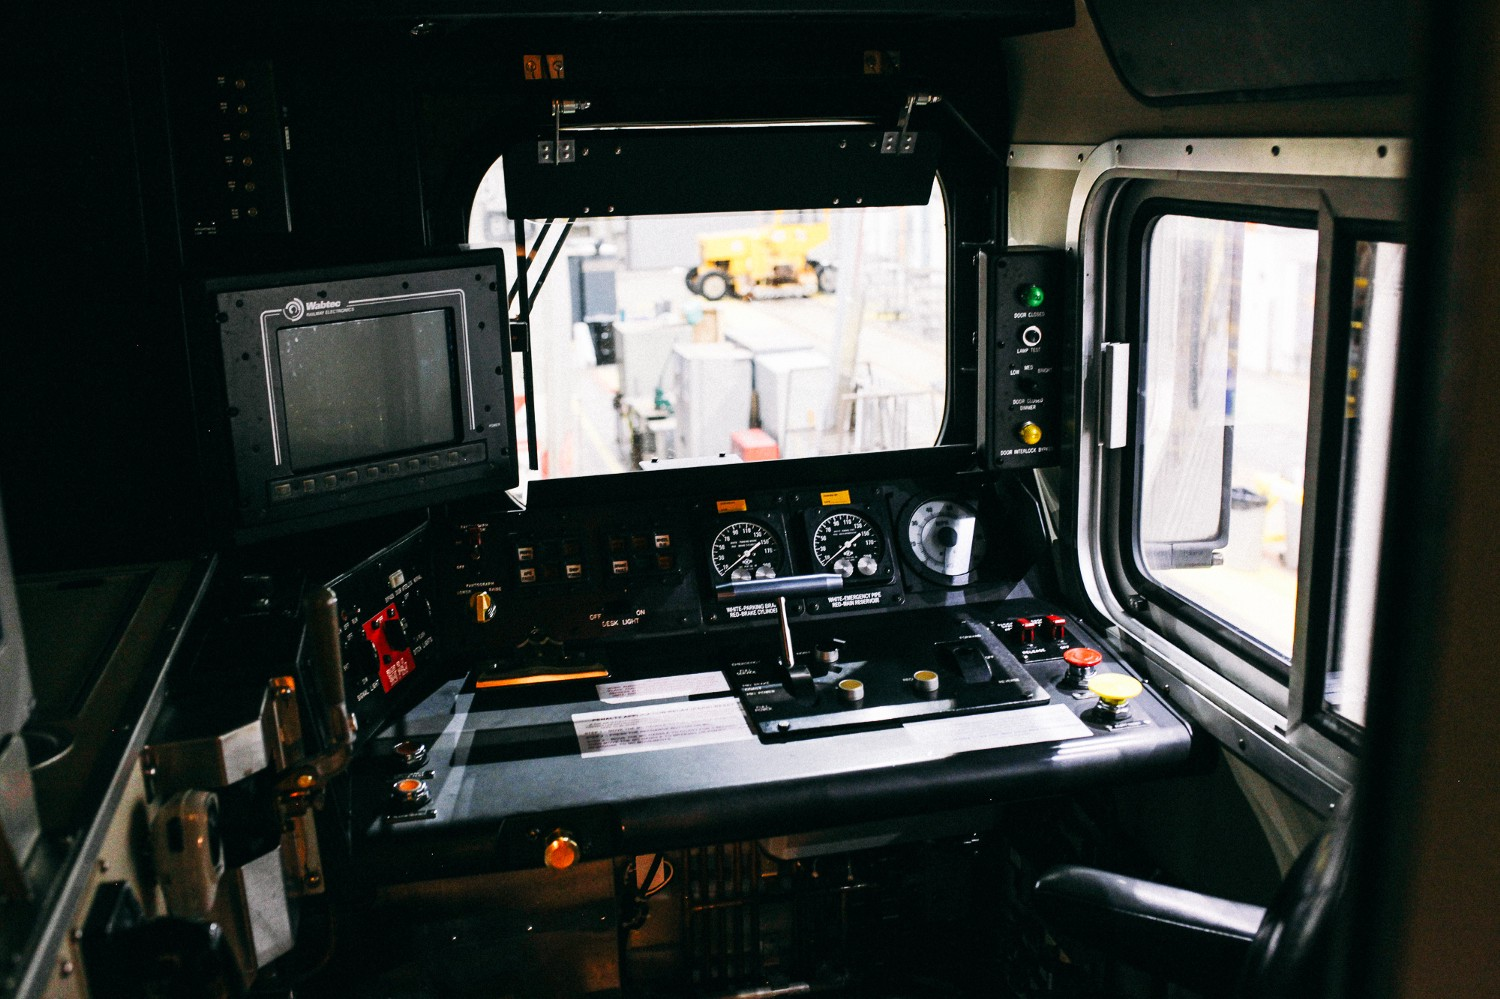 The interior of the conductor's seat of the newer cars on the Metra Electric, which sits higher than the cars from 1972. This means the conductors can see more of the rails in front of them.